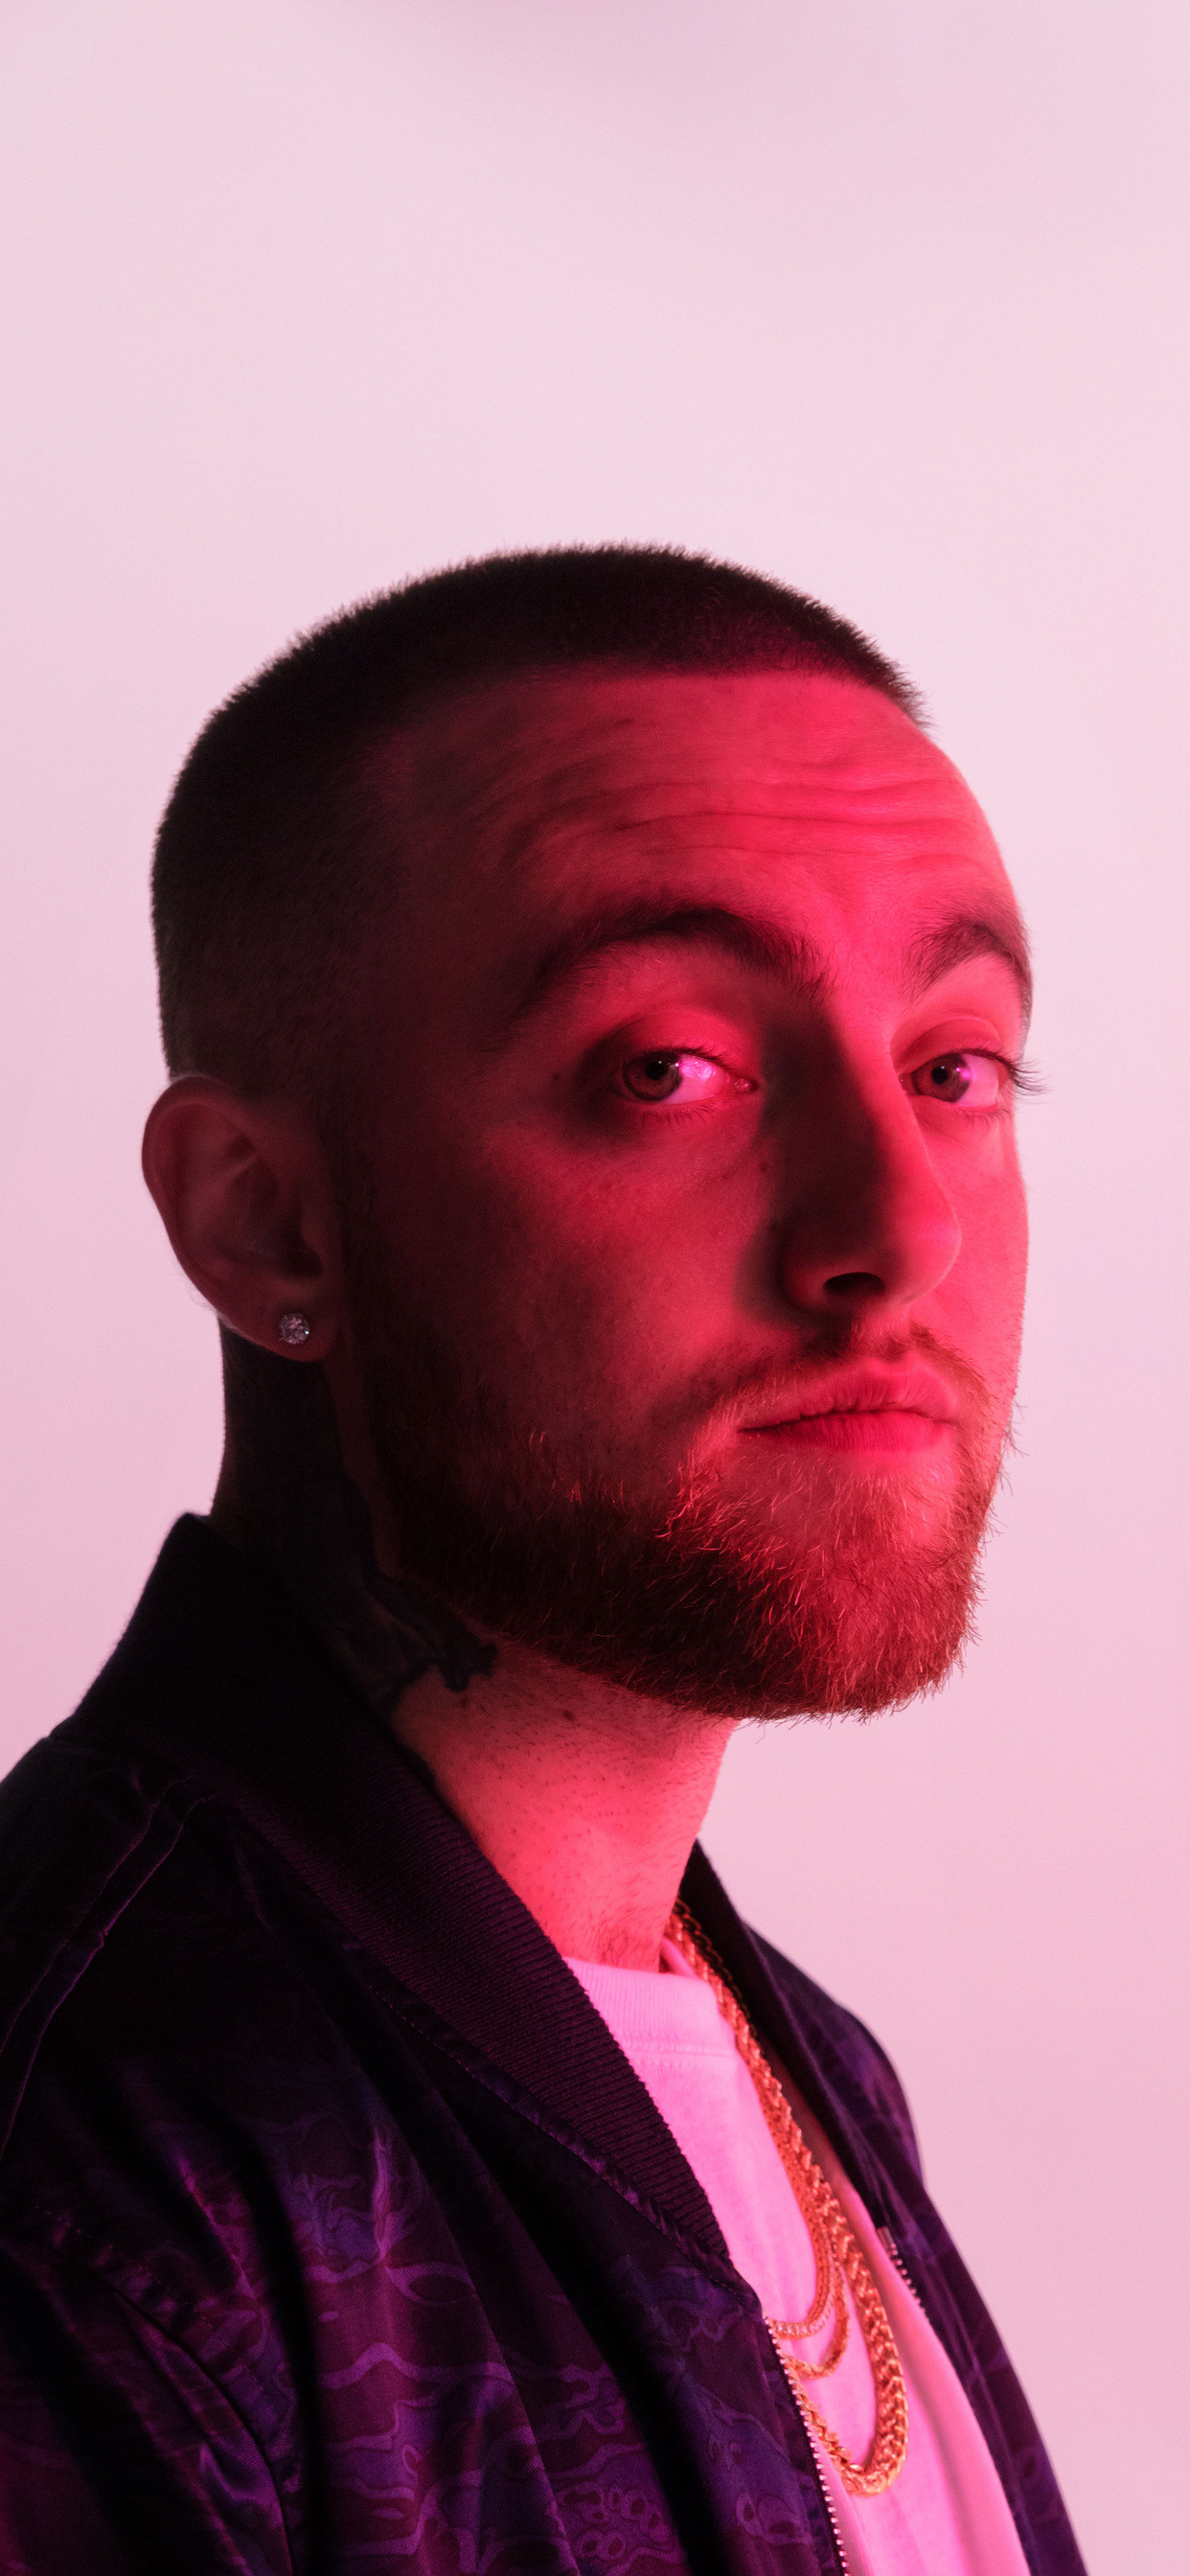 Mac Miller Wallpapers HD Most Dope (71+ pictures)